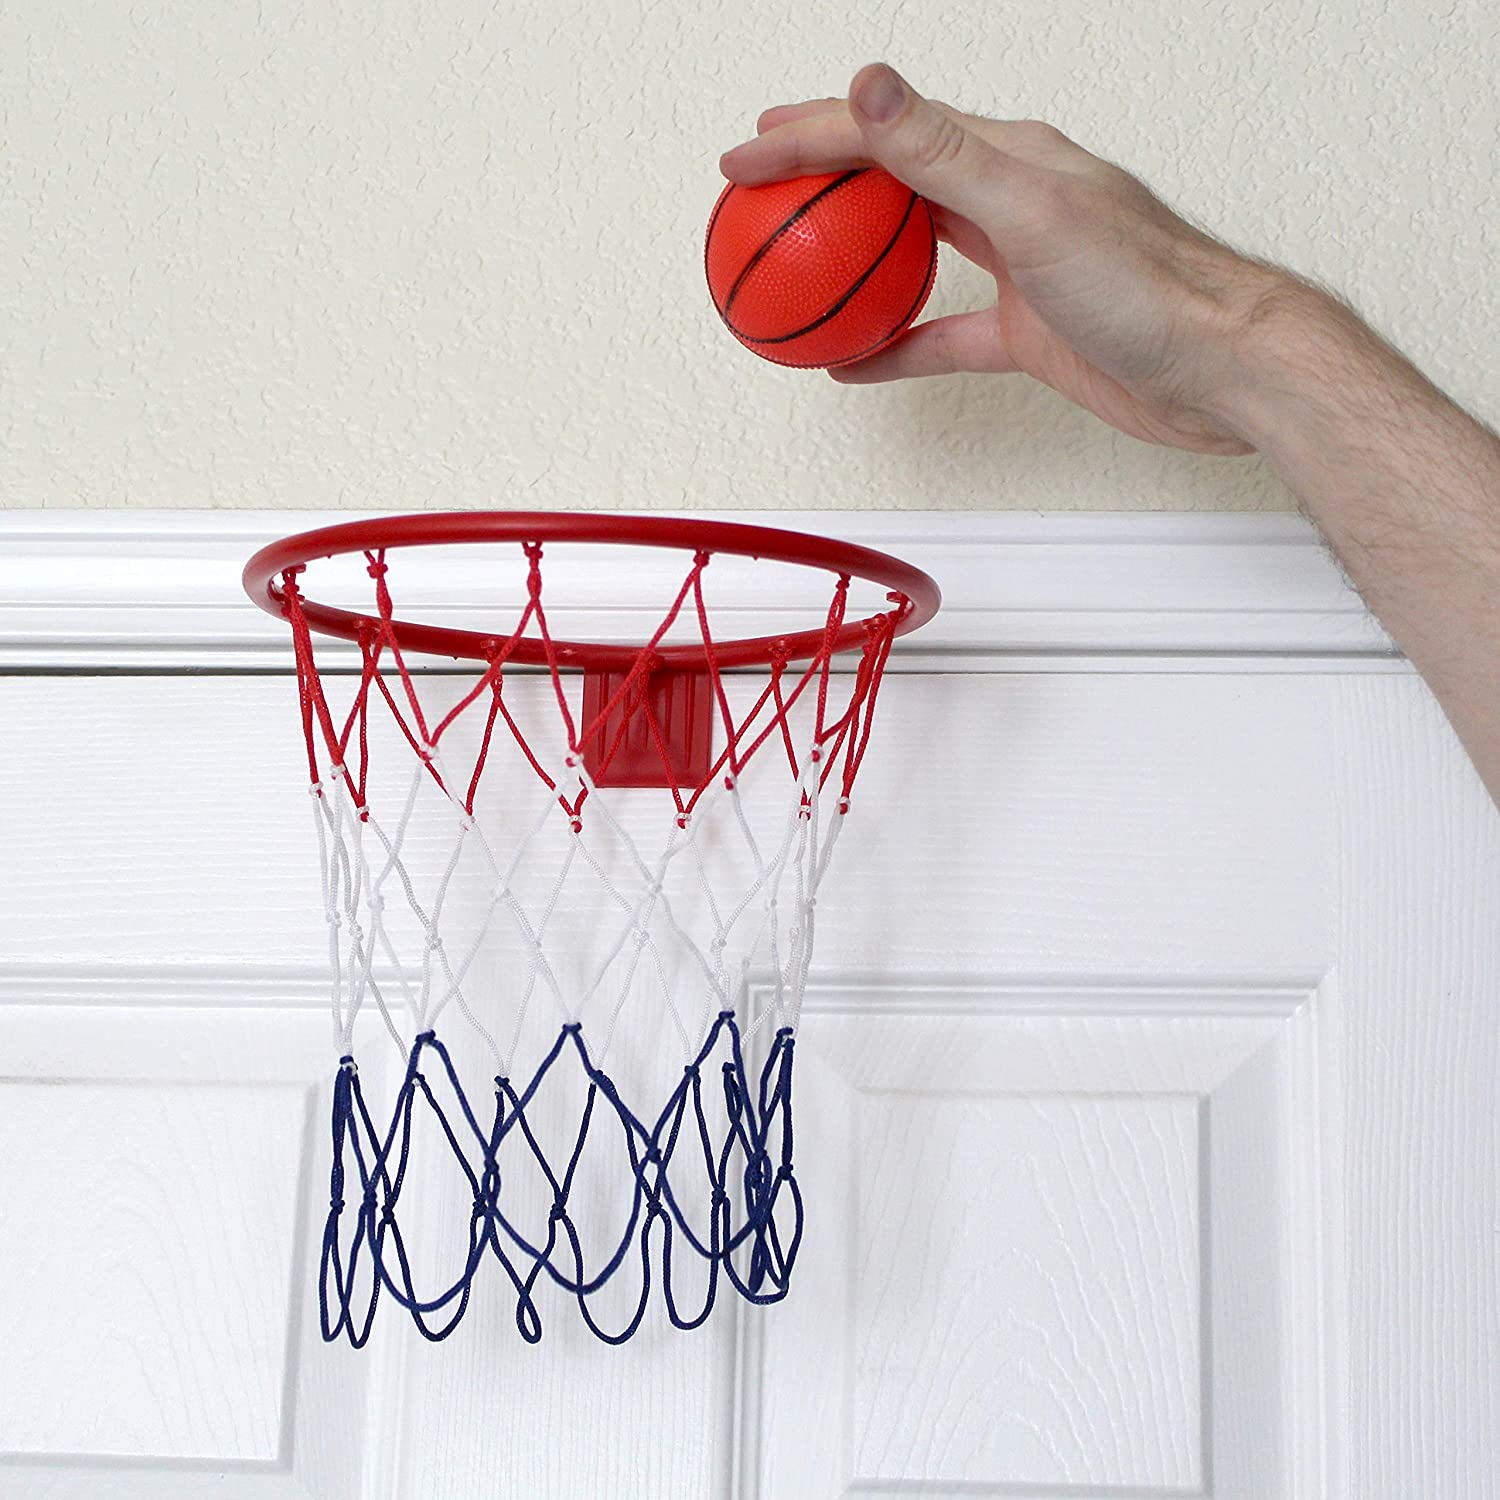 Sporting Goods Humorous The Original Fun Workshop Over The Door Basketball To-go Fine Quality Indoor Games